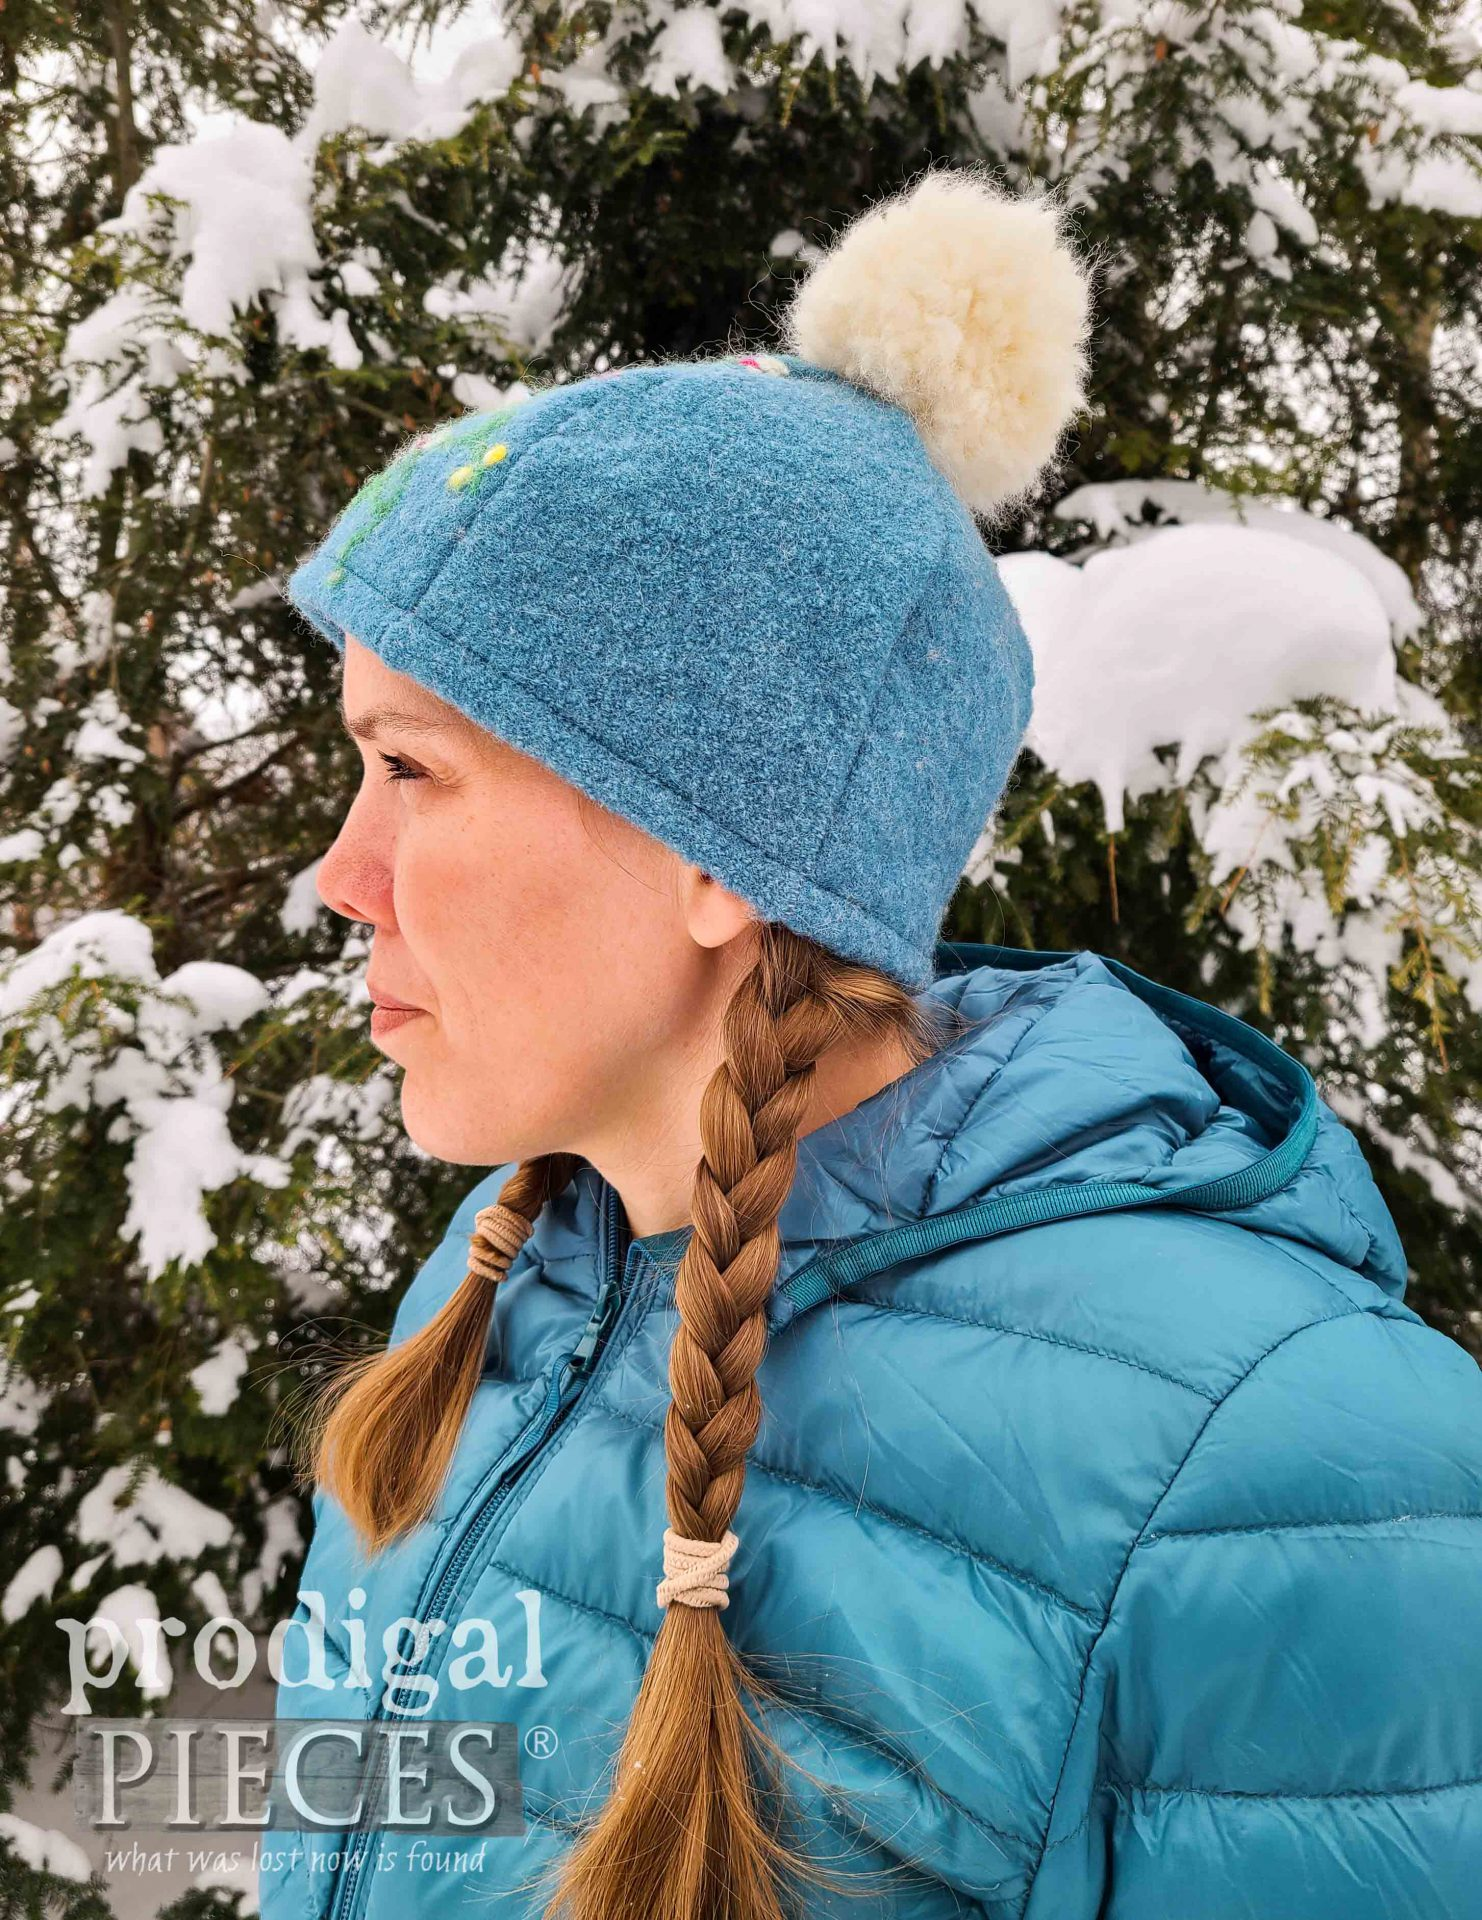 DIY Felted Wool Hat from Upcycled Sweaters by Larissa of Prodigal Pieces | prodigalpieces.com #prodigalpieces #handmade #sewing #fashion #hat #wool